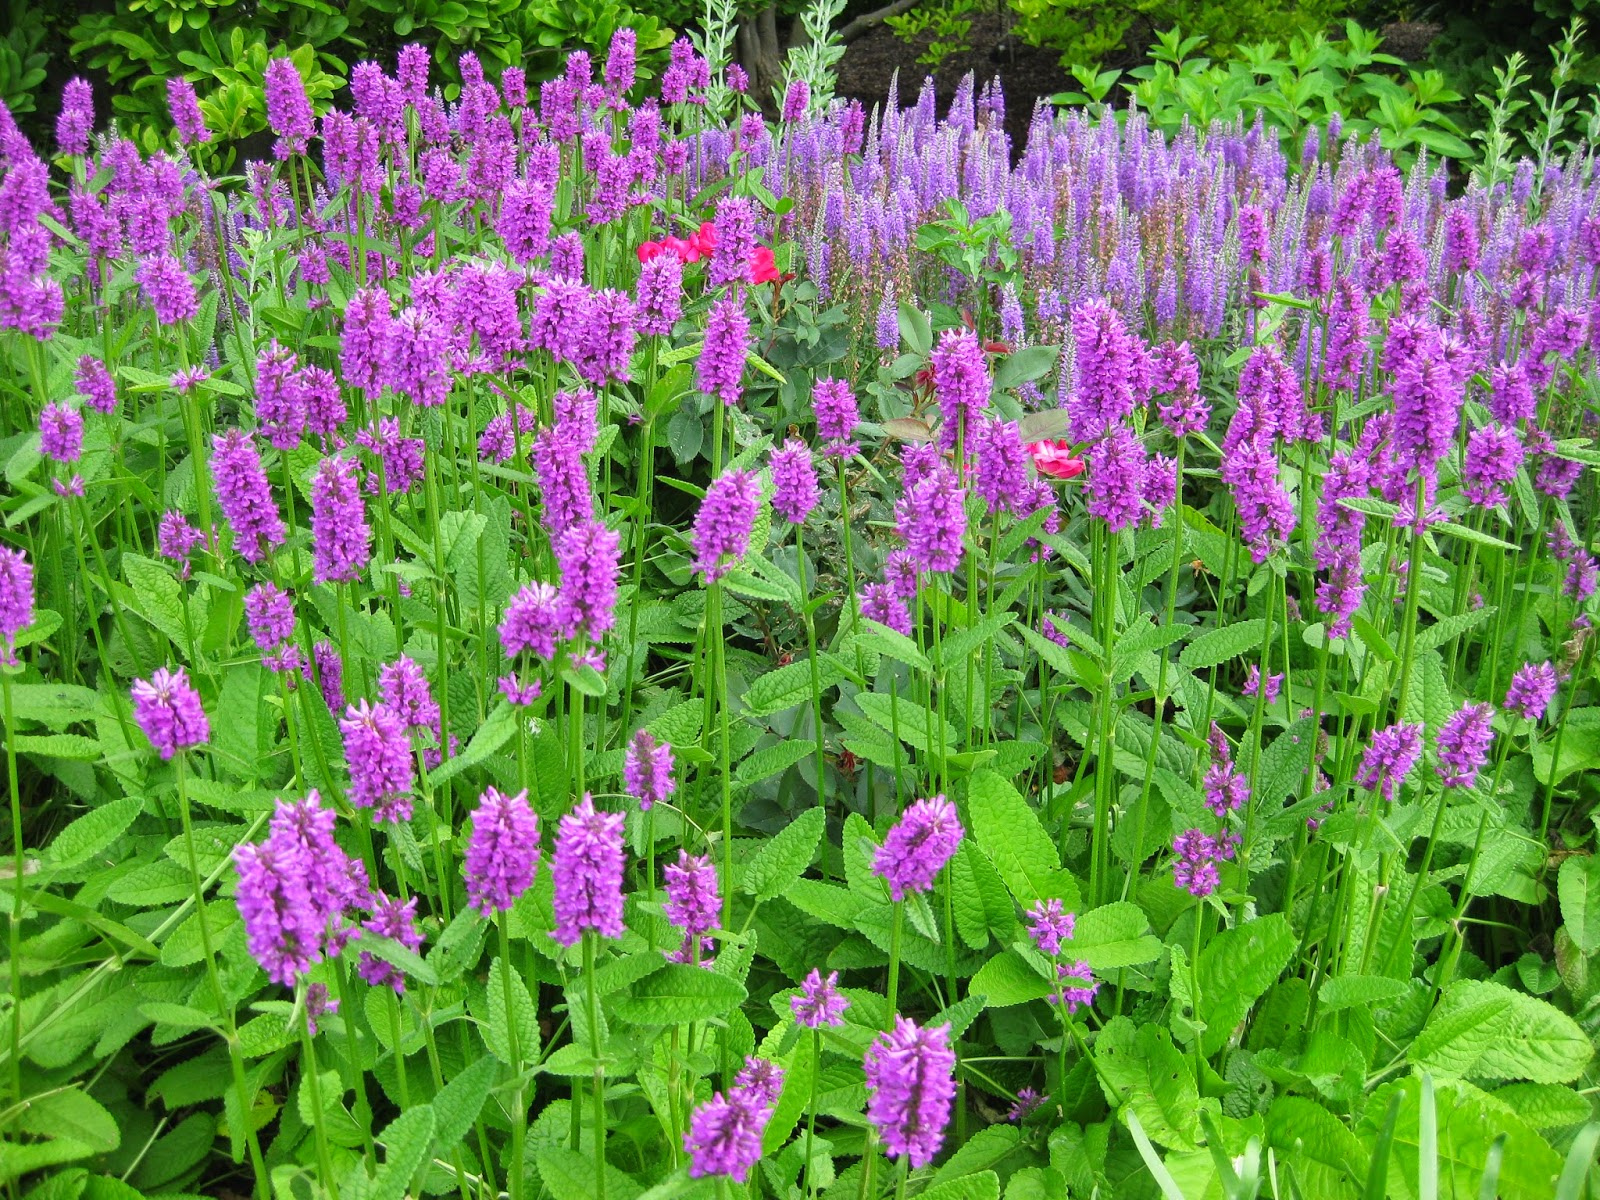 Wood betony stachys officinalis rotary botanical gardens for Perennial wood